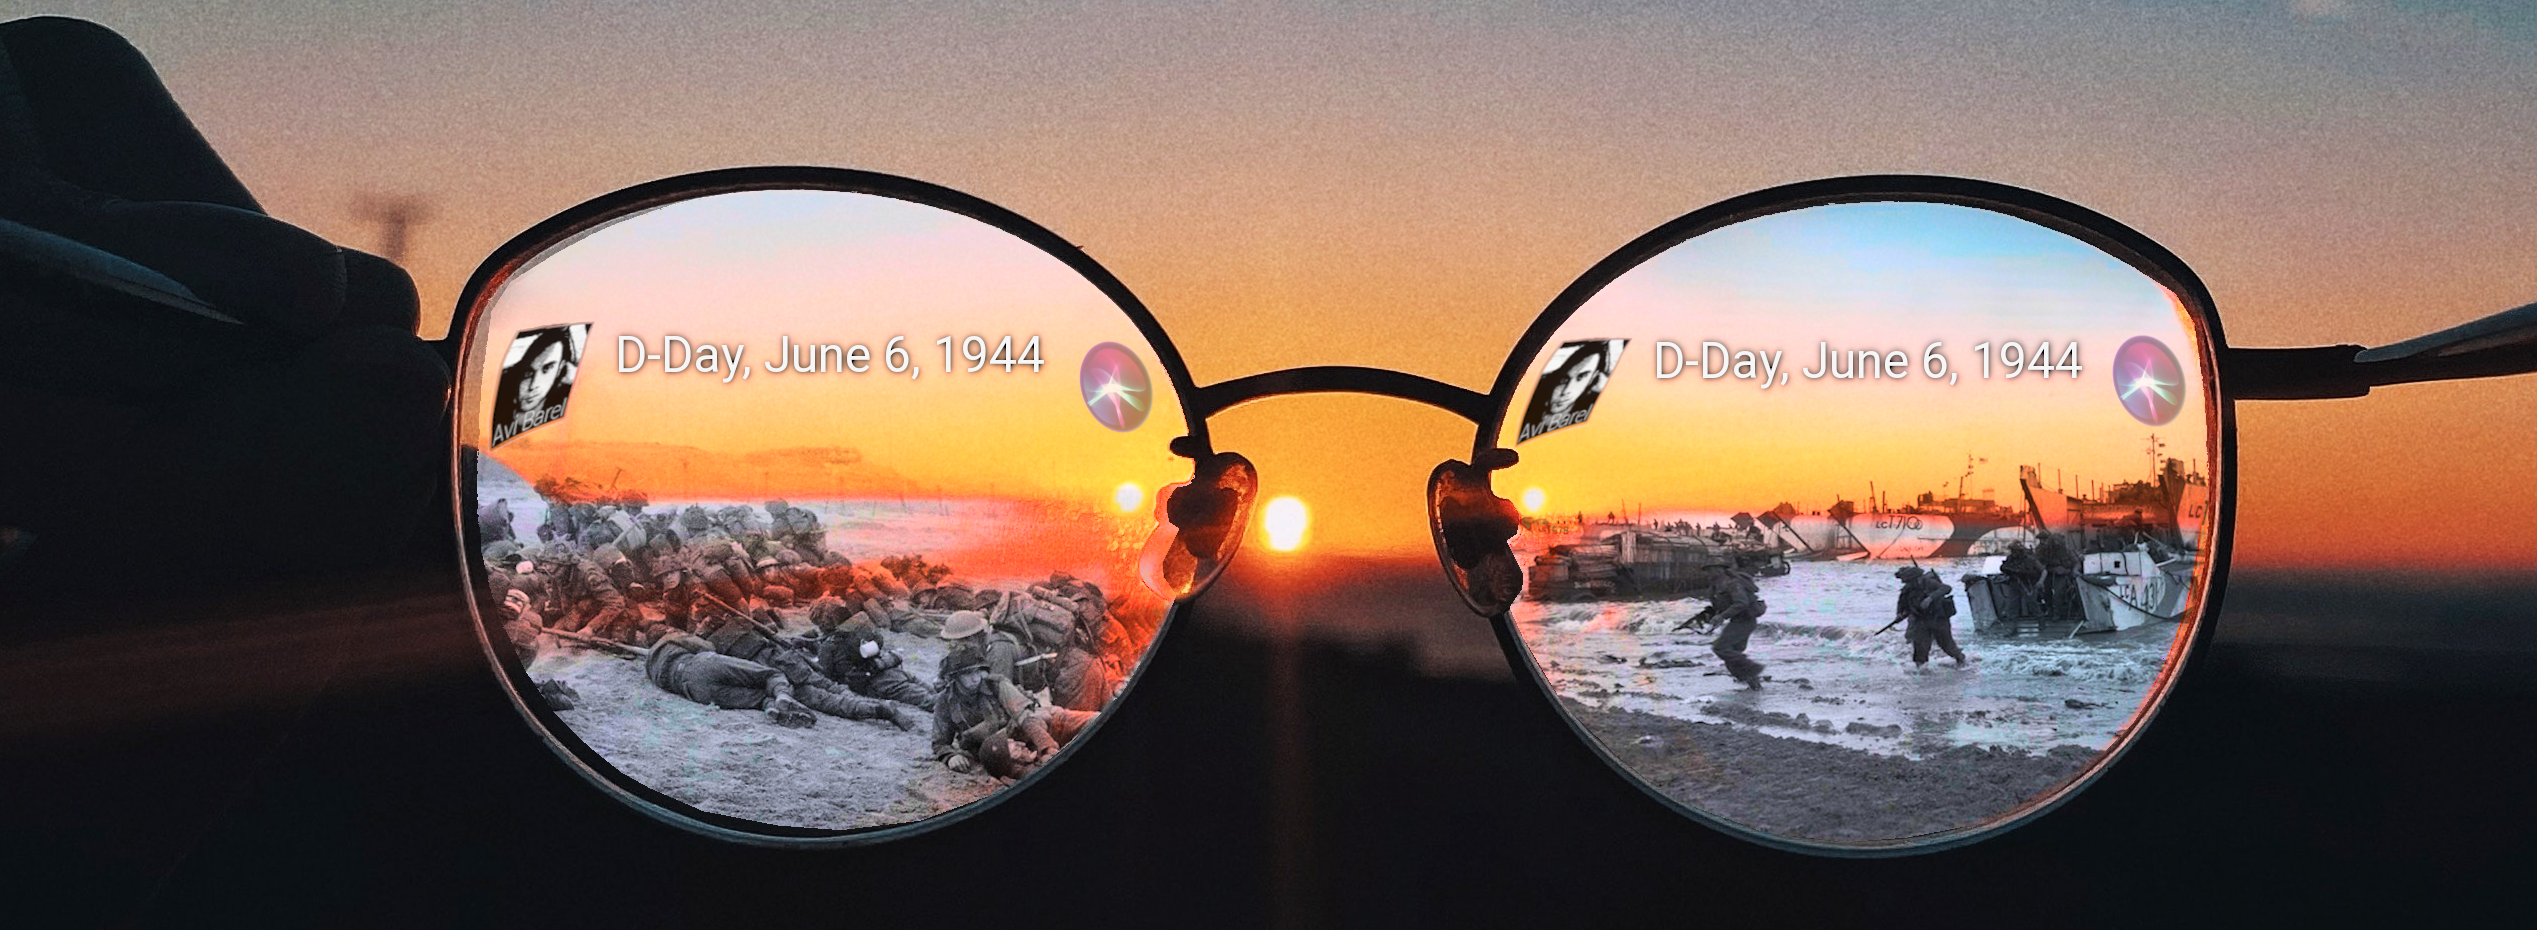 AR glasses with  location based historic events (D-Day, Normandy)